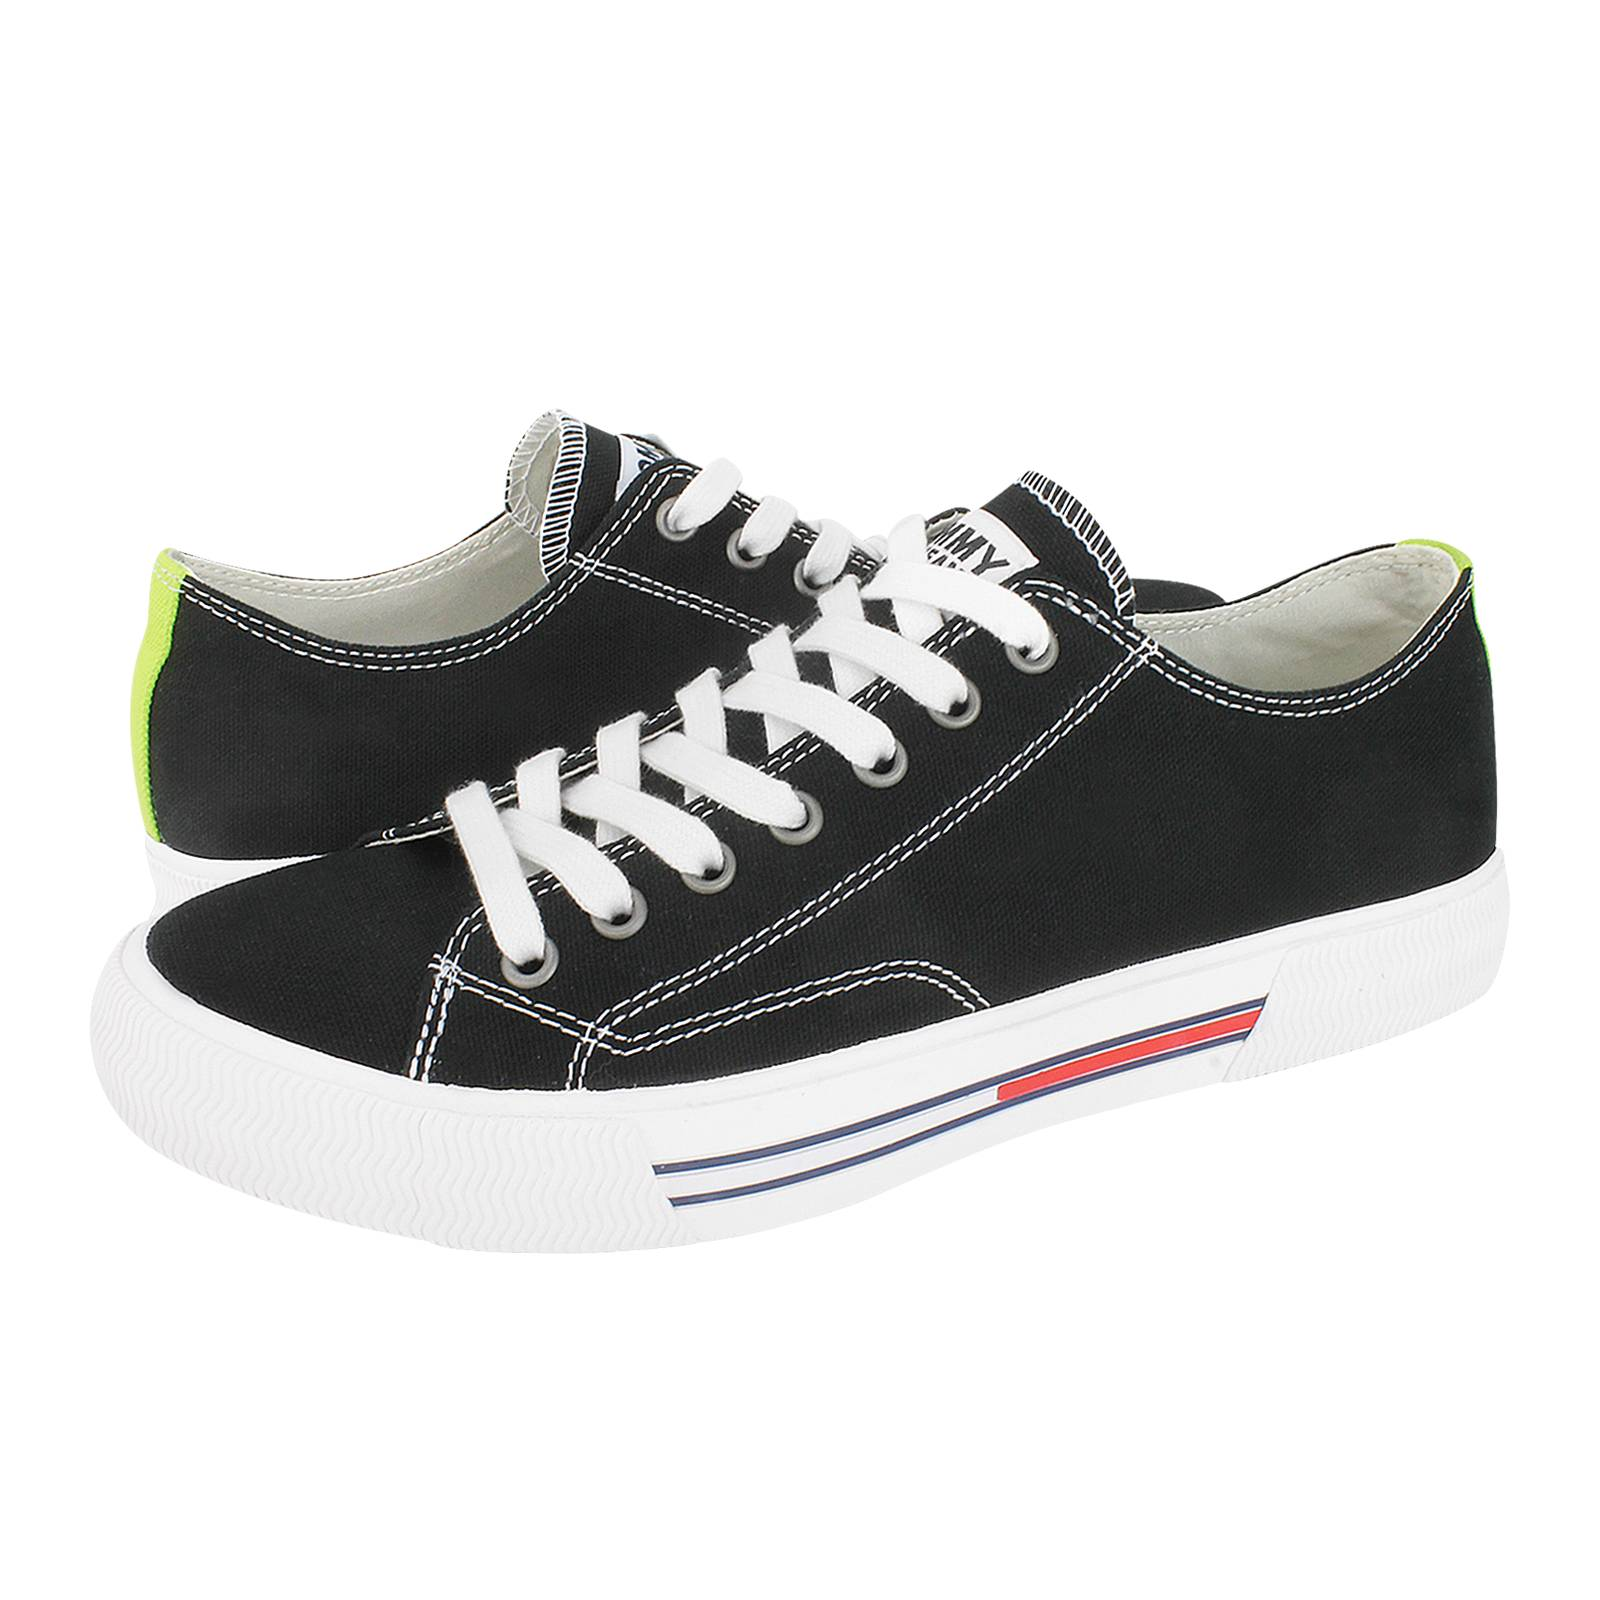 Classic Tommy Jeans Sneaker - Tommy